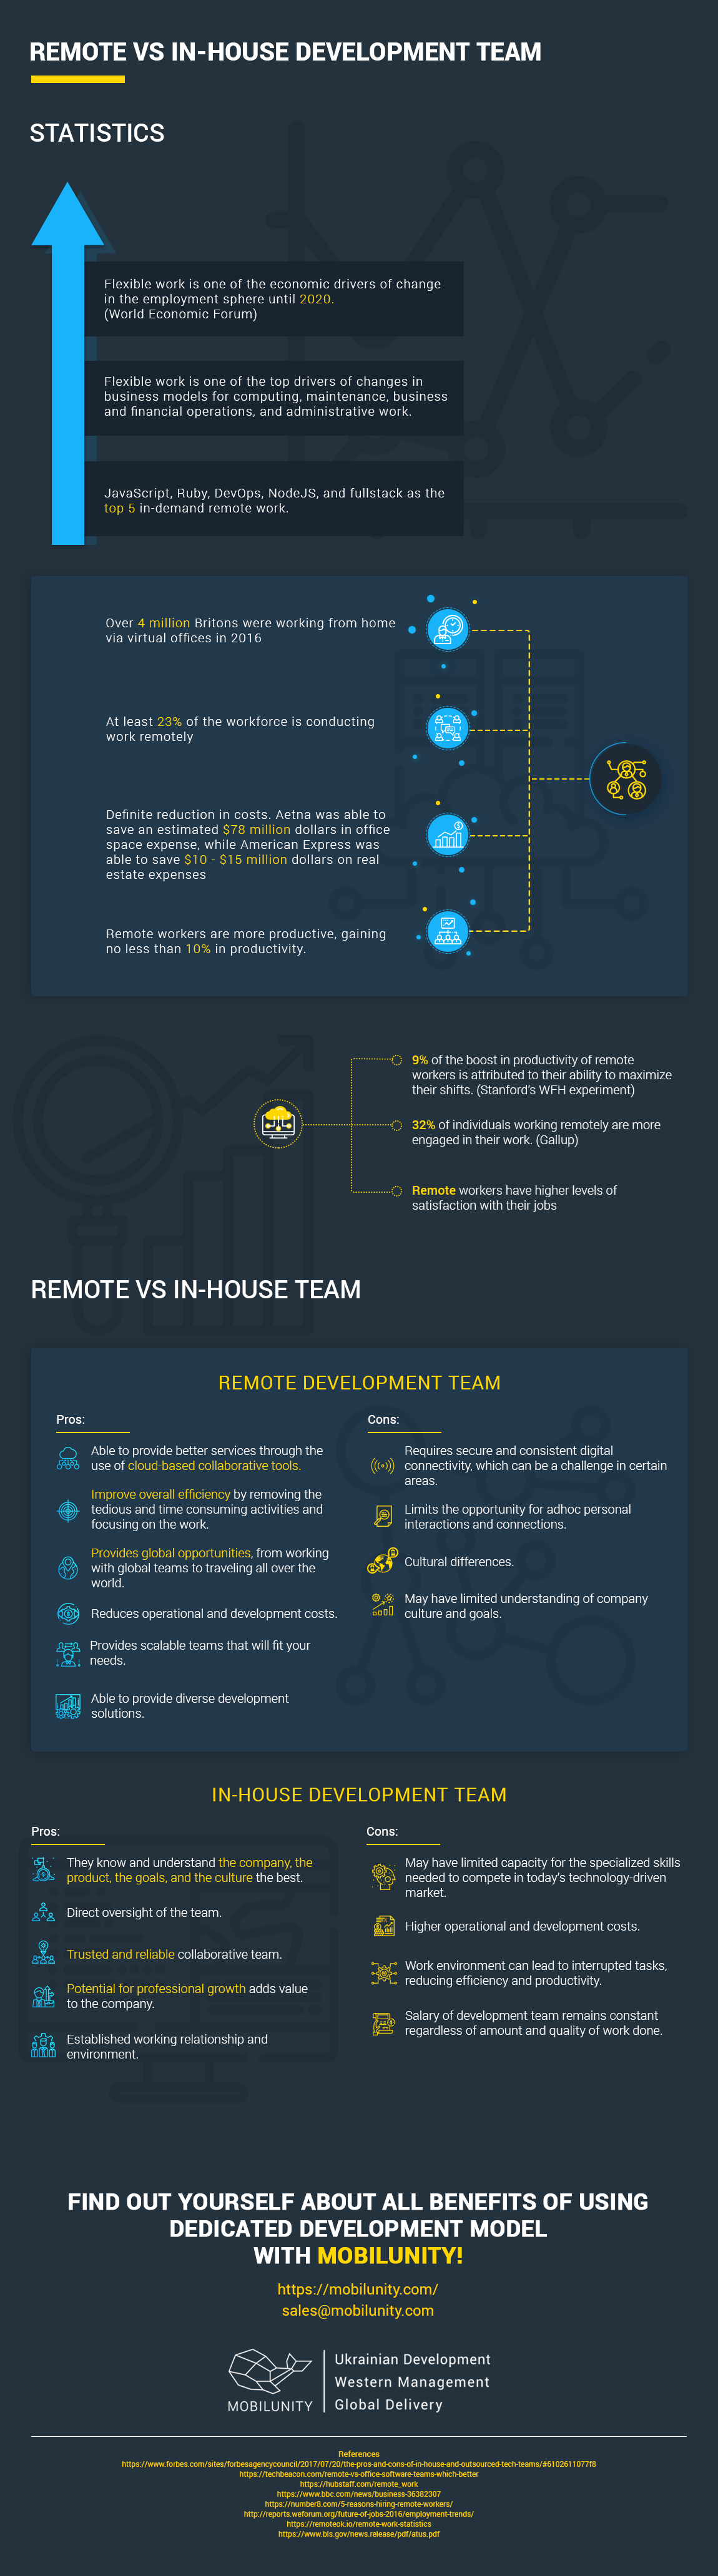 remote vs in-house development team